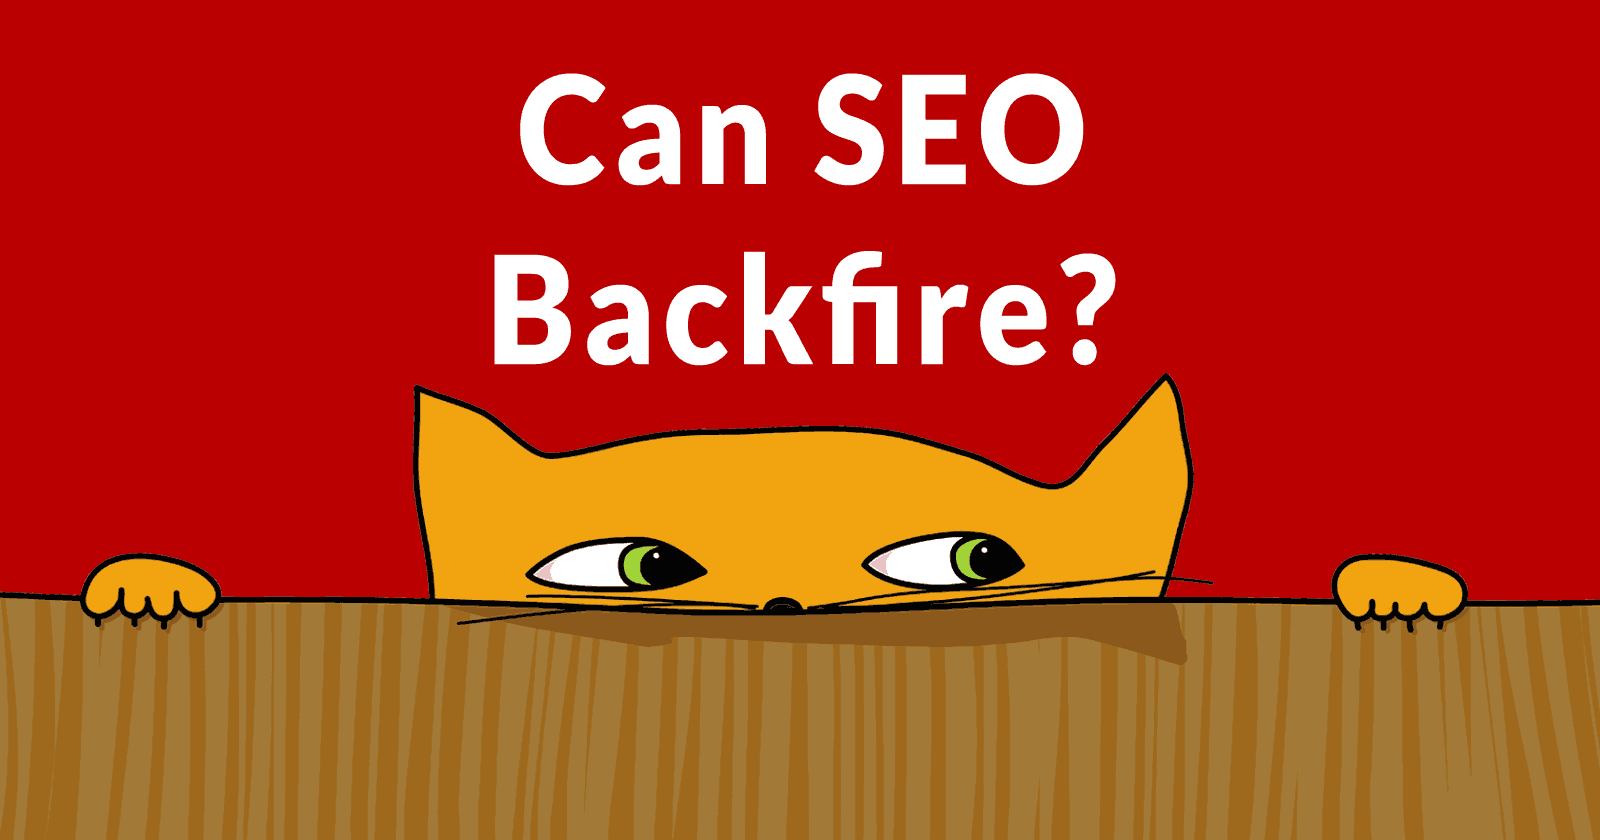 Can SEO Have a Negative Effect? - Search Engine Journal